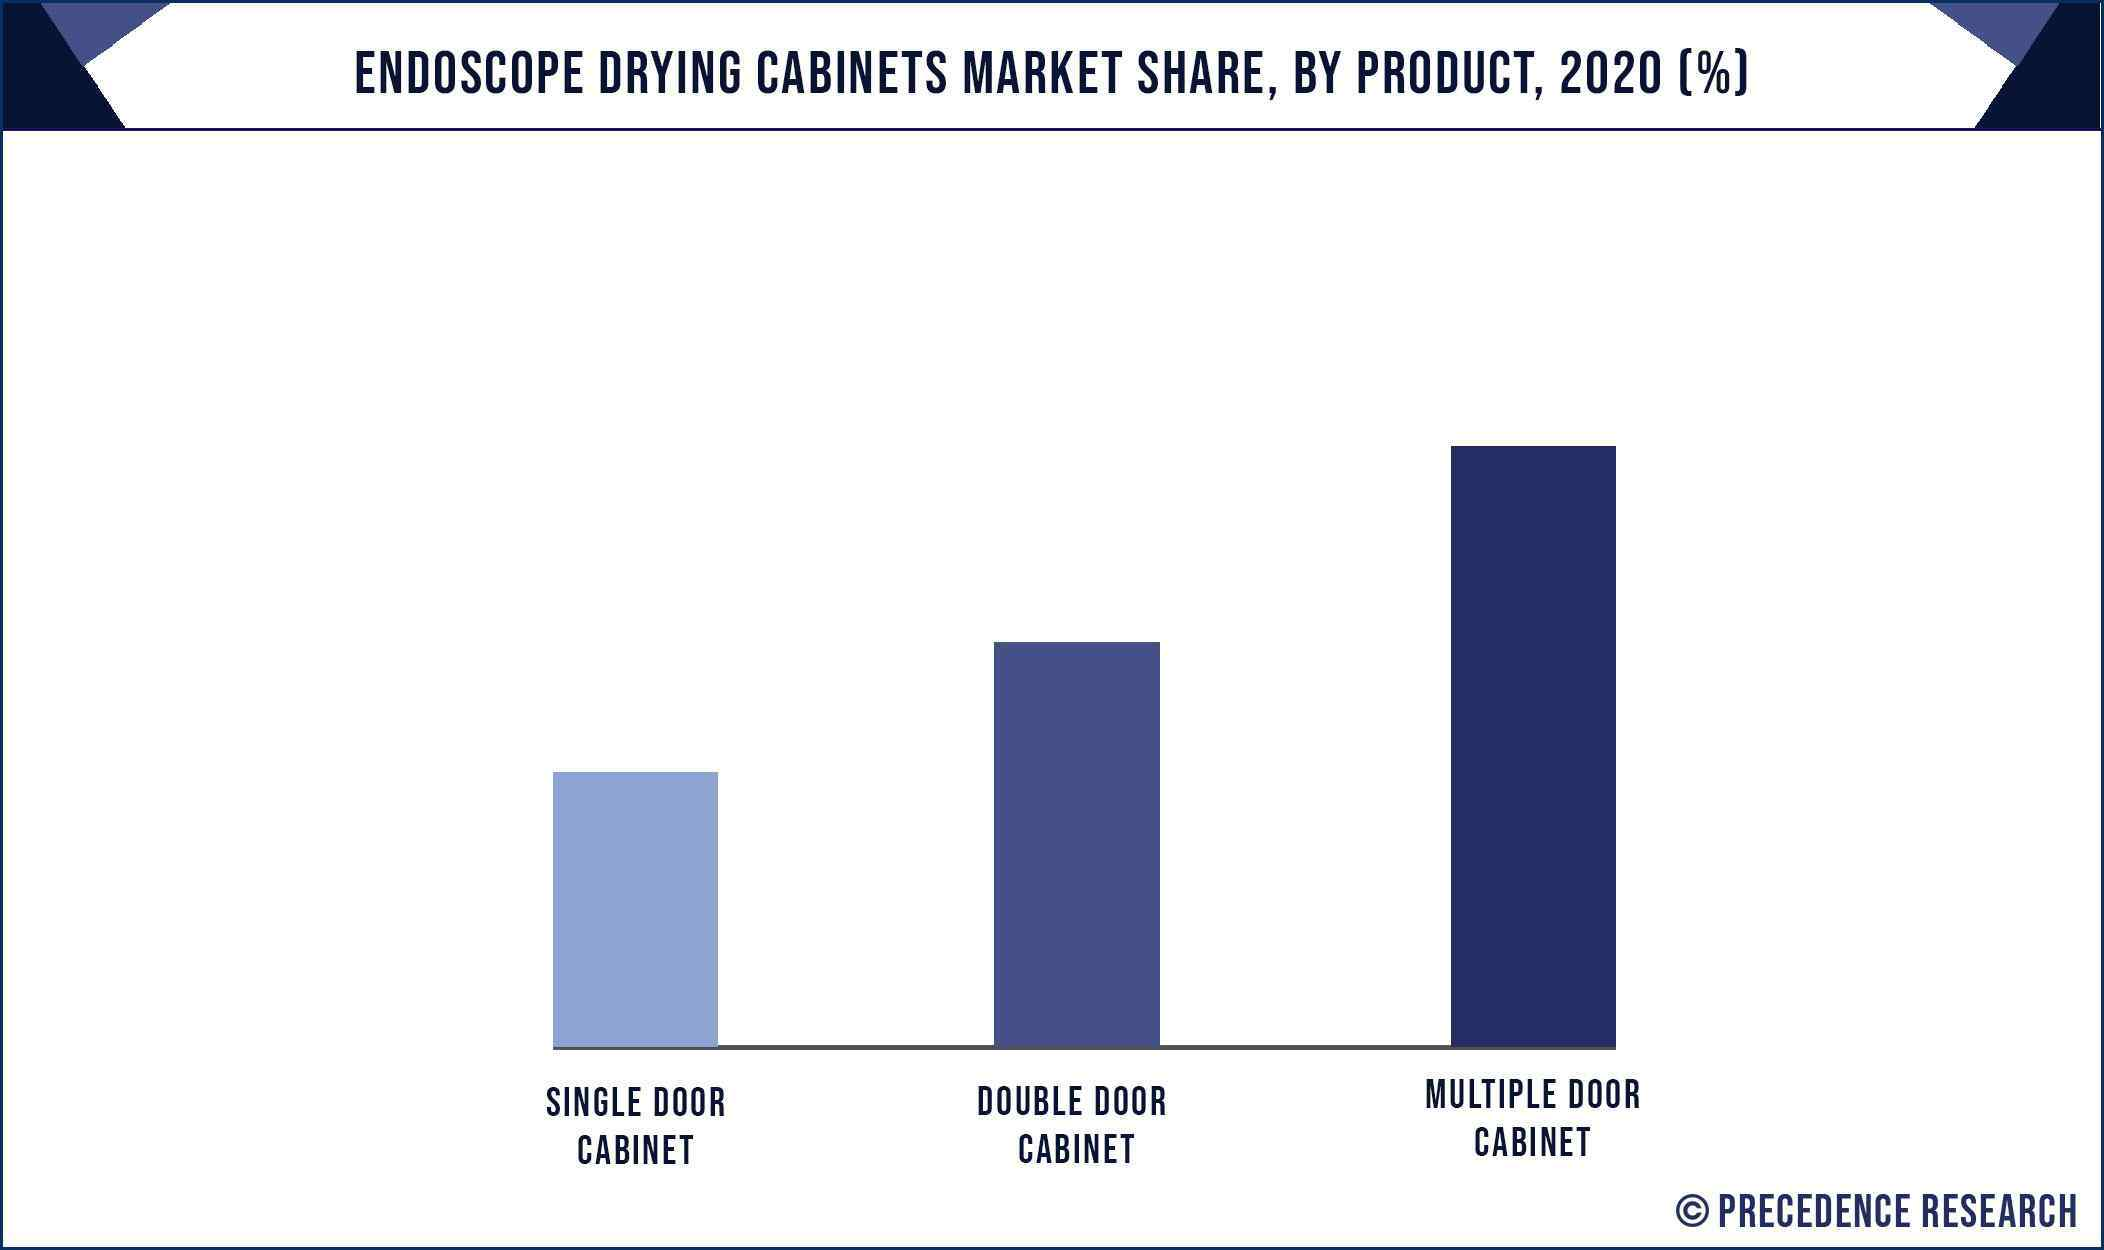 Endoscope Drying Cabinets Market Share, By Product, 2020